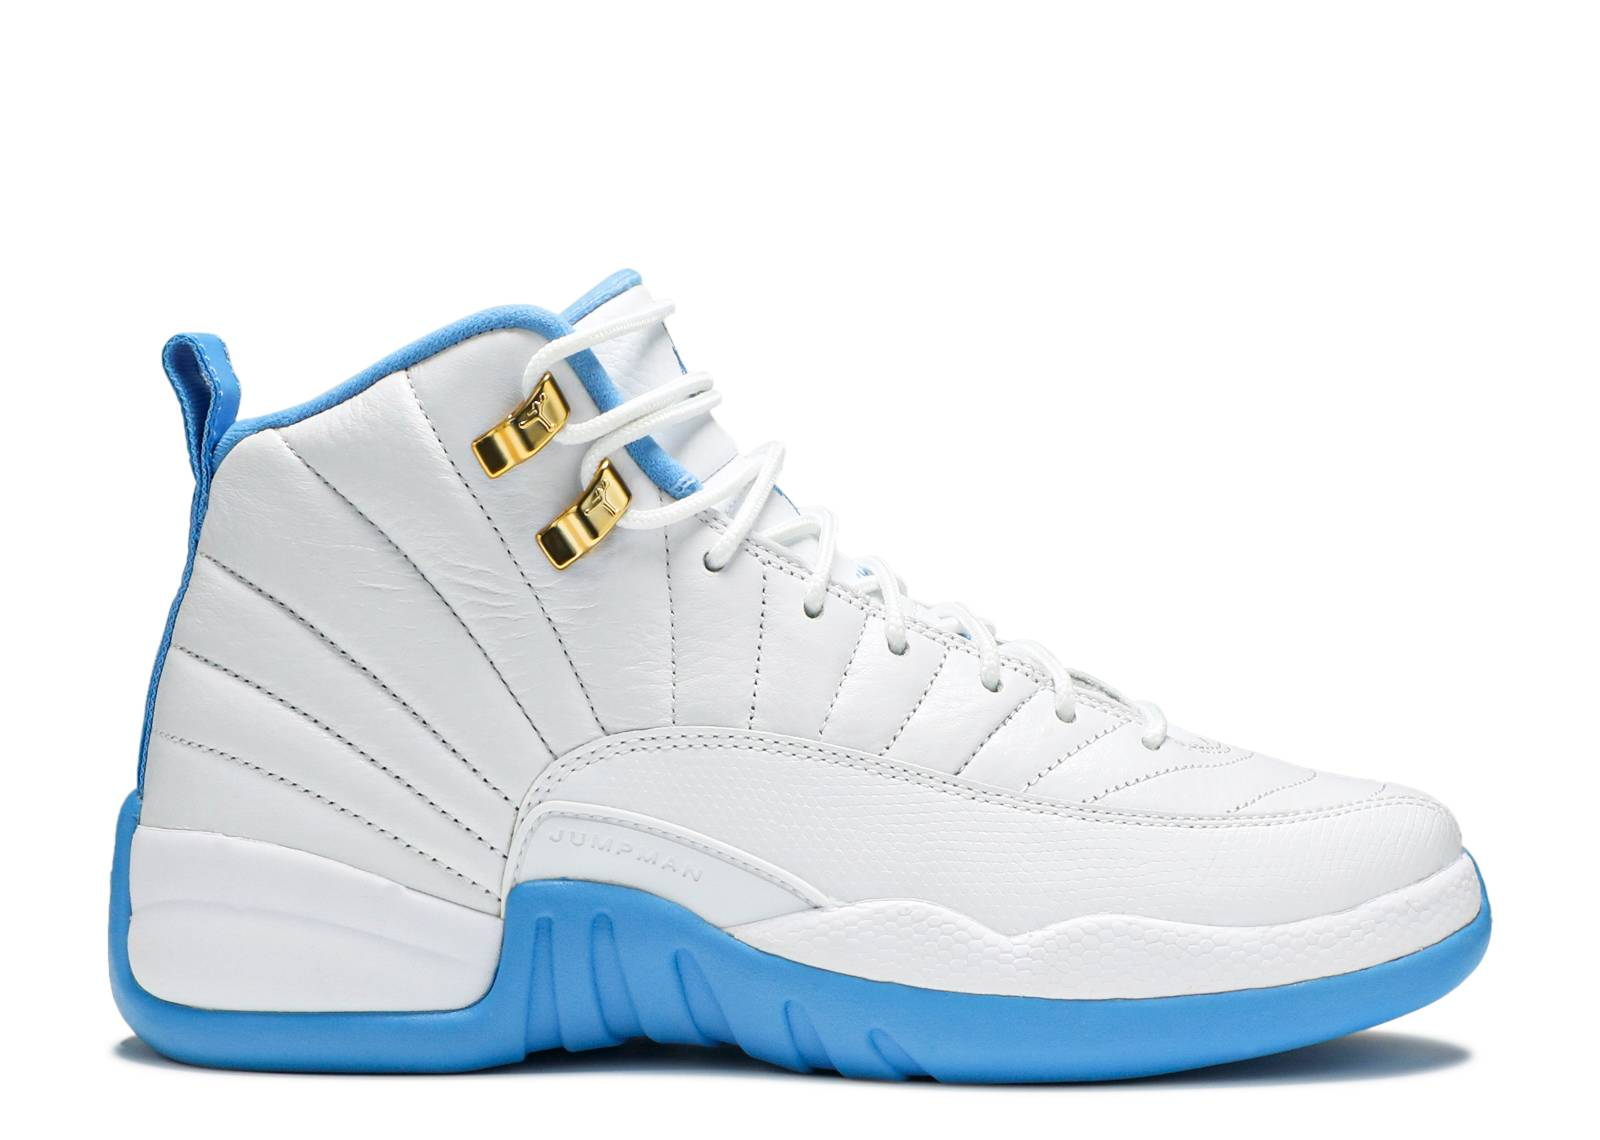 the best attitude 0dc0a c5017 Air Jordan 12 Retro GG 'University Blue'